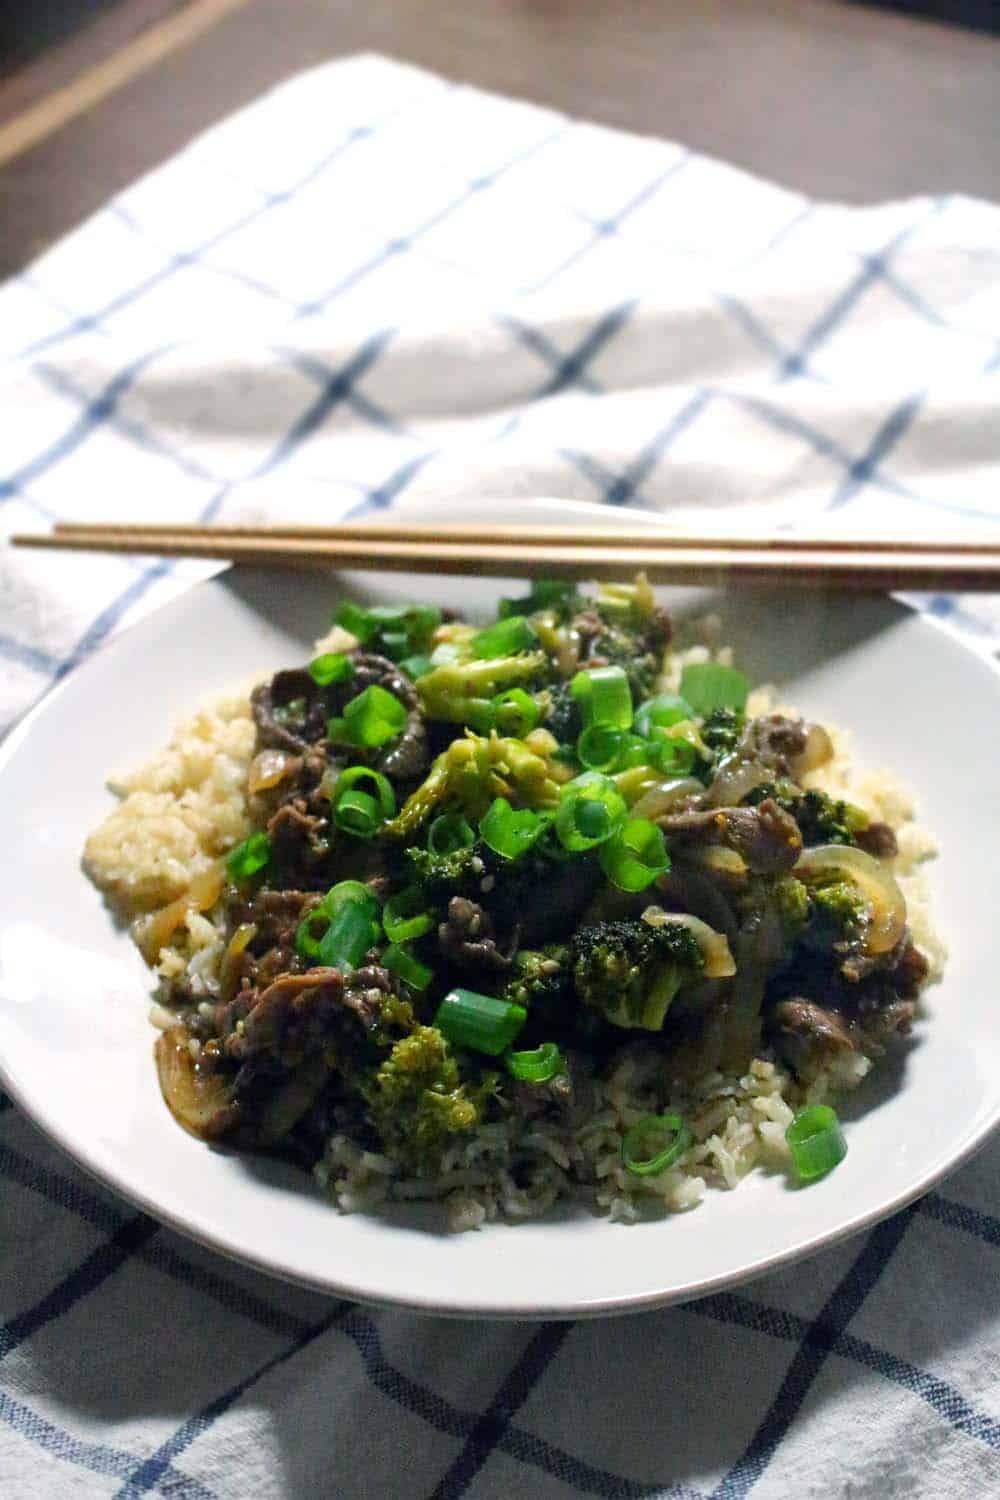 Five-Spice Orange Beef and Broccoli (better than take-out!)